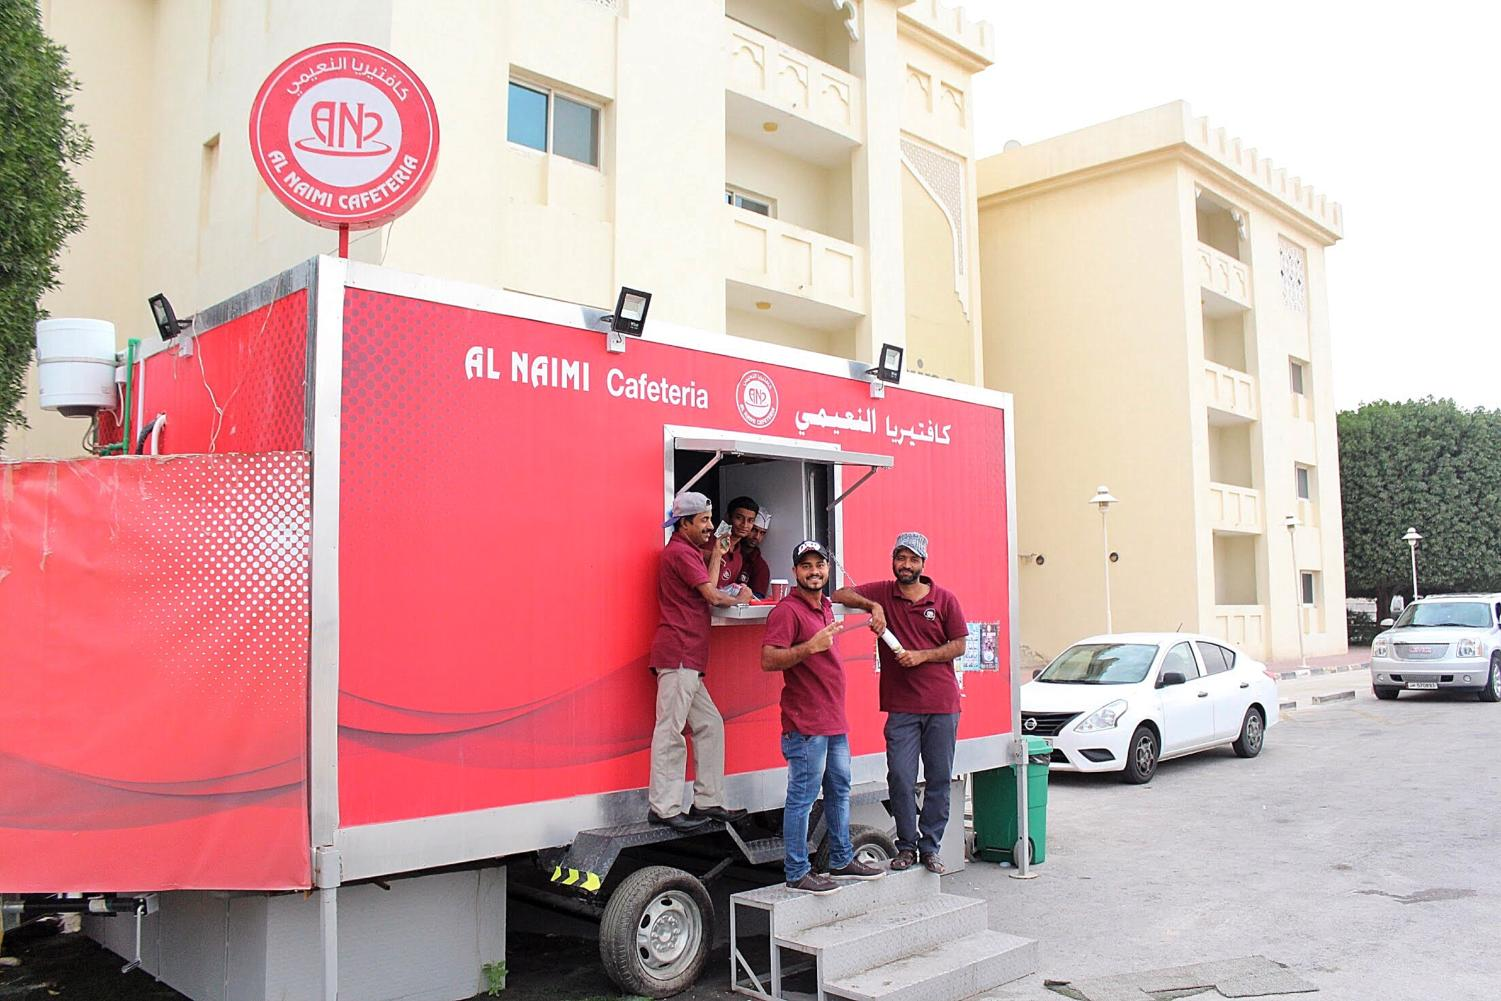 How does Qatar Foundation choose food vendors? – The Daily Q